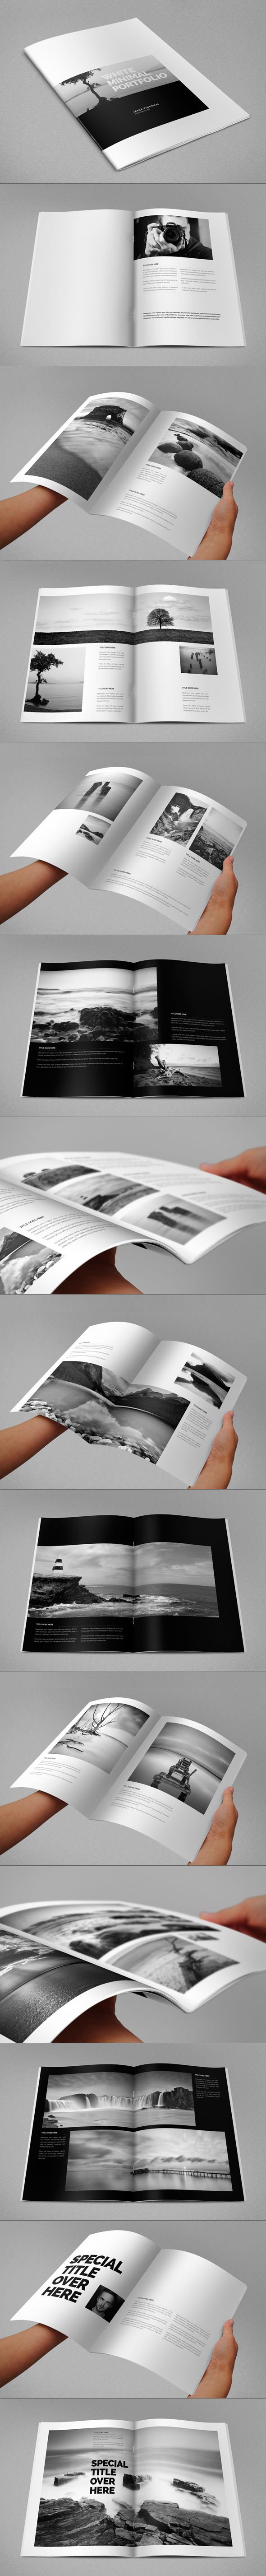 White Minimal Portfolio. Download here: http://graphicriver.net/item/white-minimal-portfolio/8325211?ref=abradesign #design #brochure #portfolio